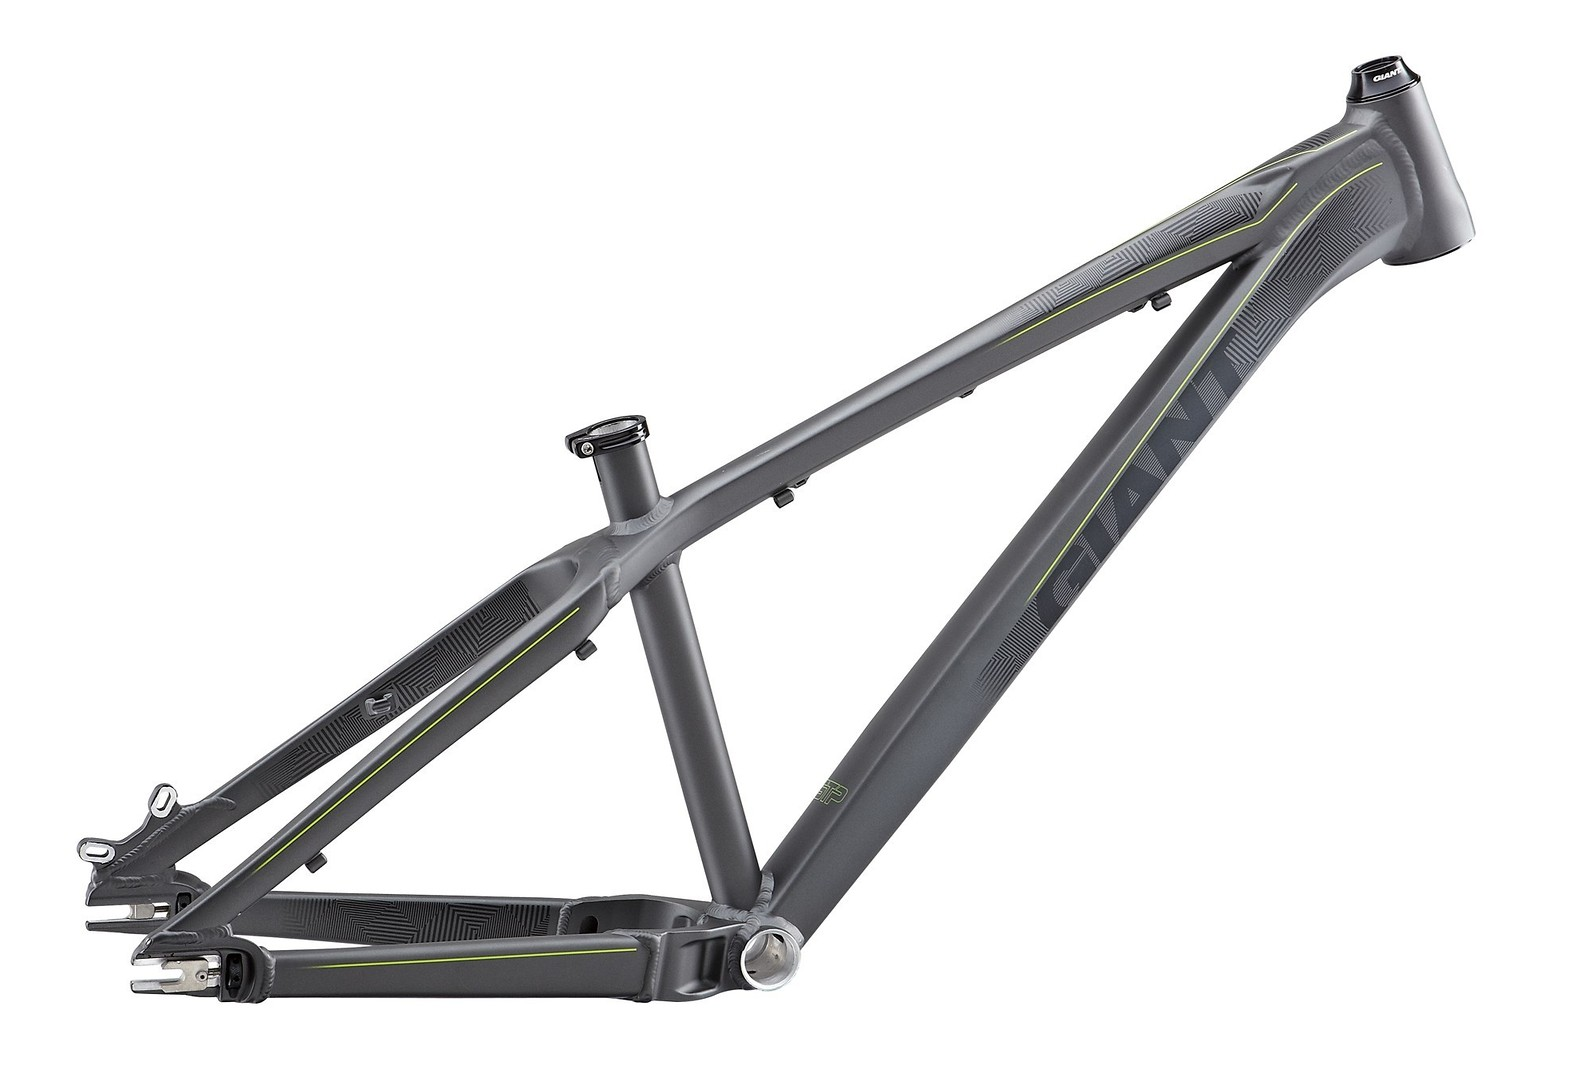 Giant STP - 2014 Frame - Reviews, Comparisons, Specs - Mountain Bike ...